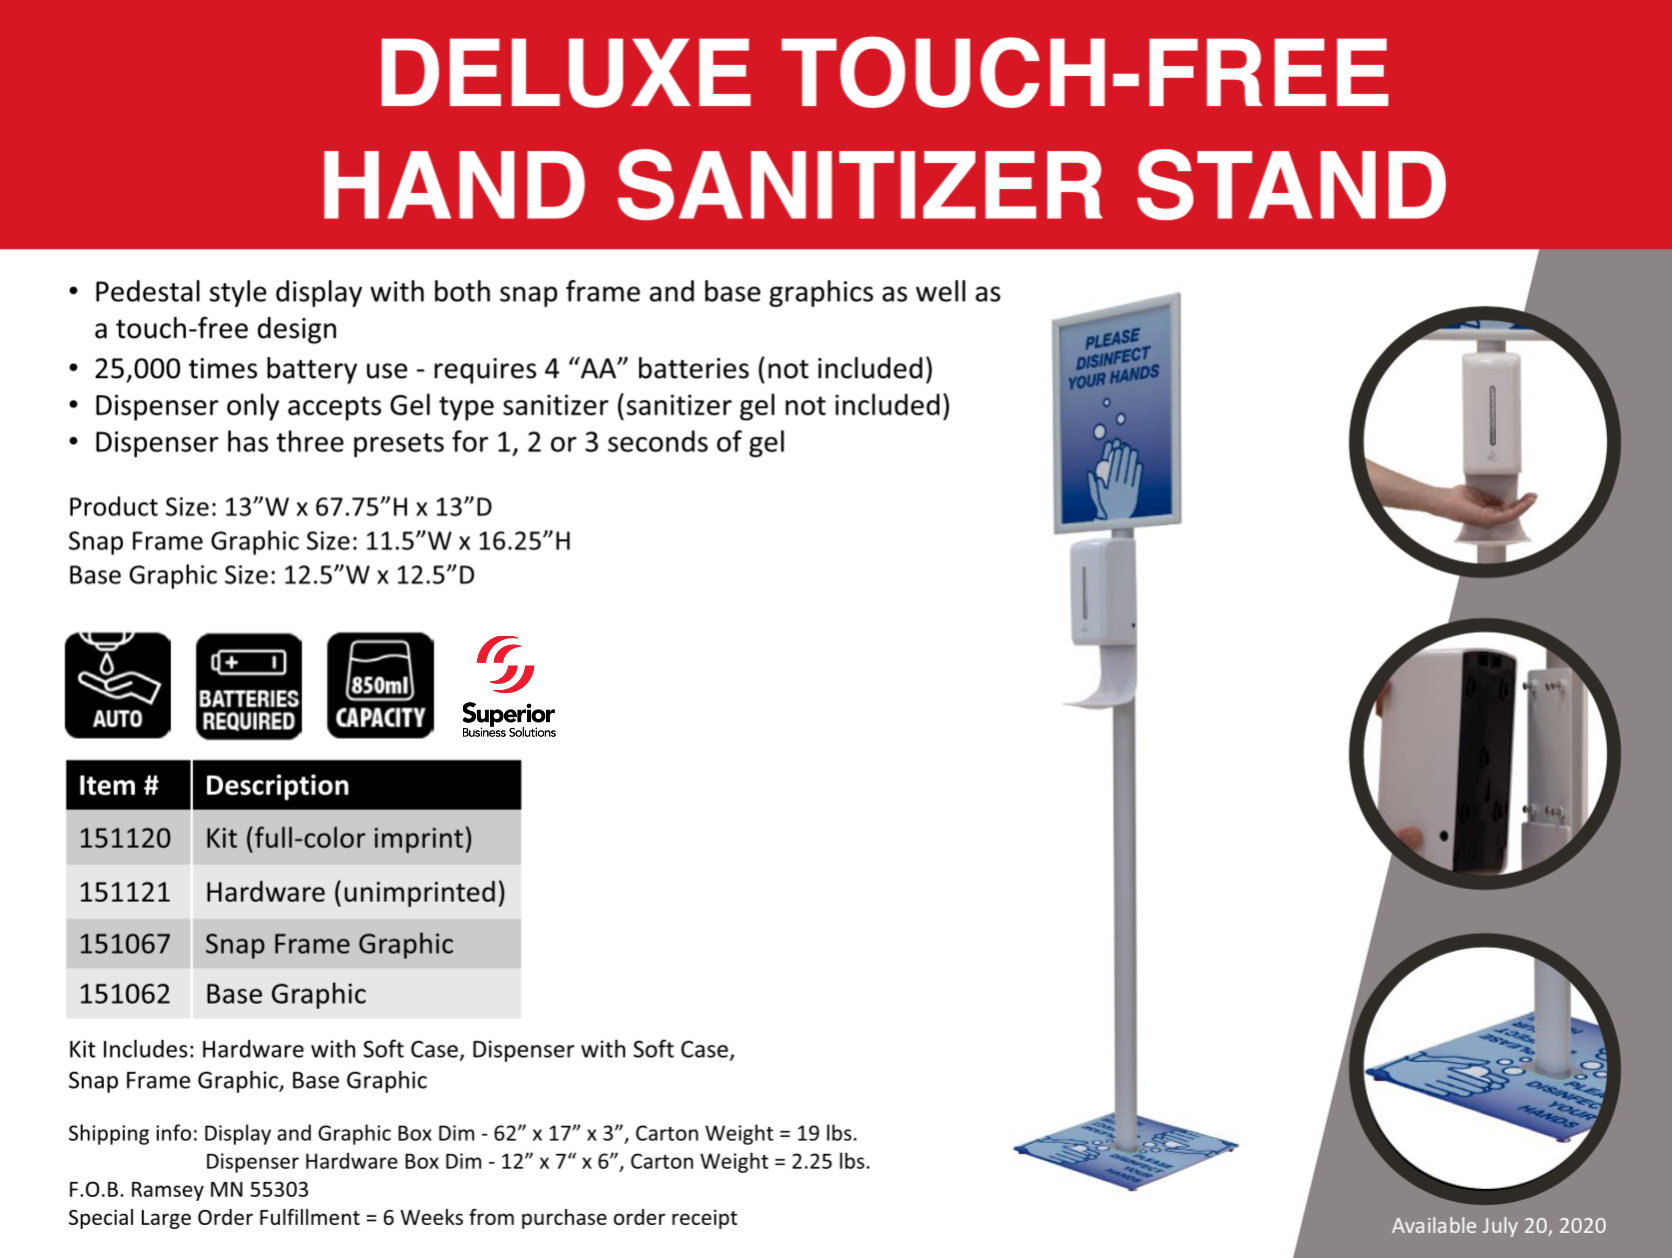 deluxe-touch-free-hand-sanitizer-stand-for-gel-sanitizer-branded